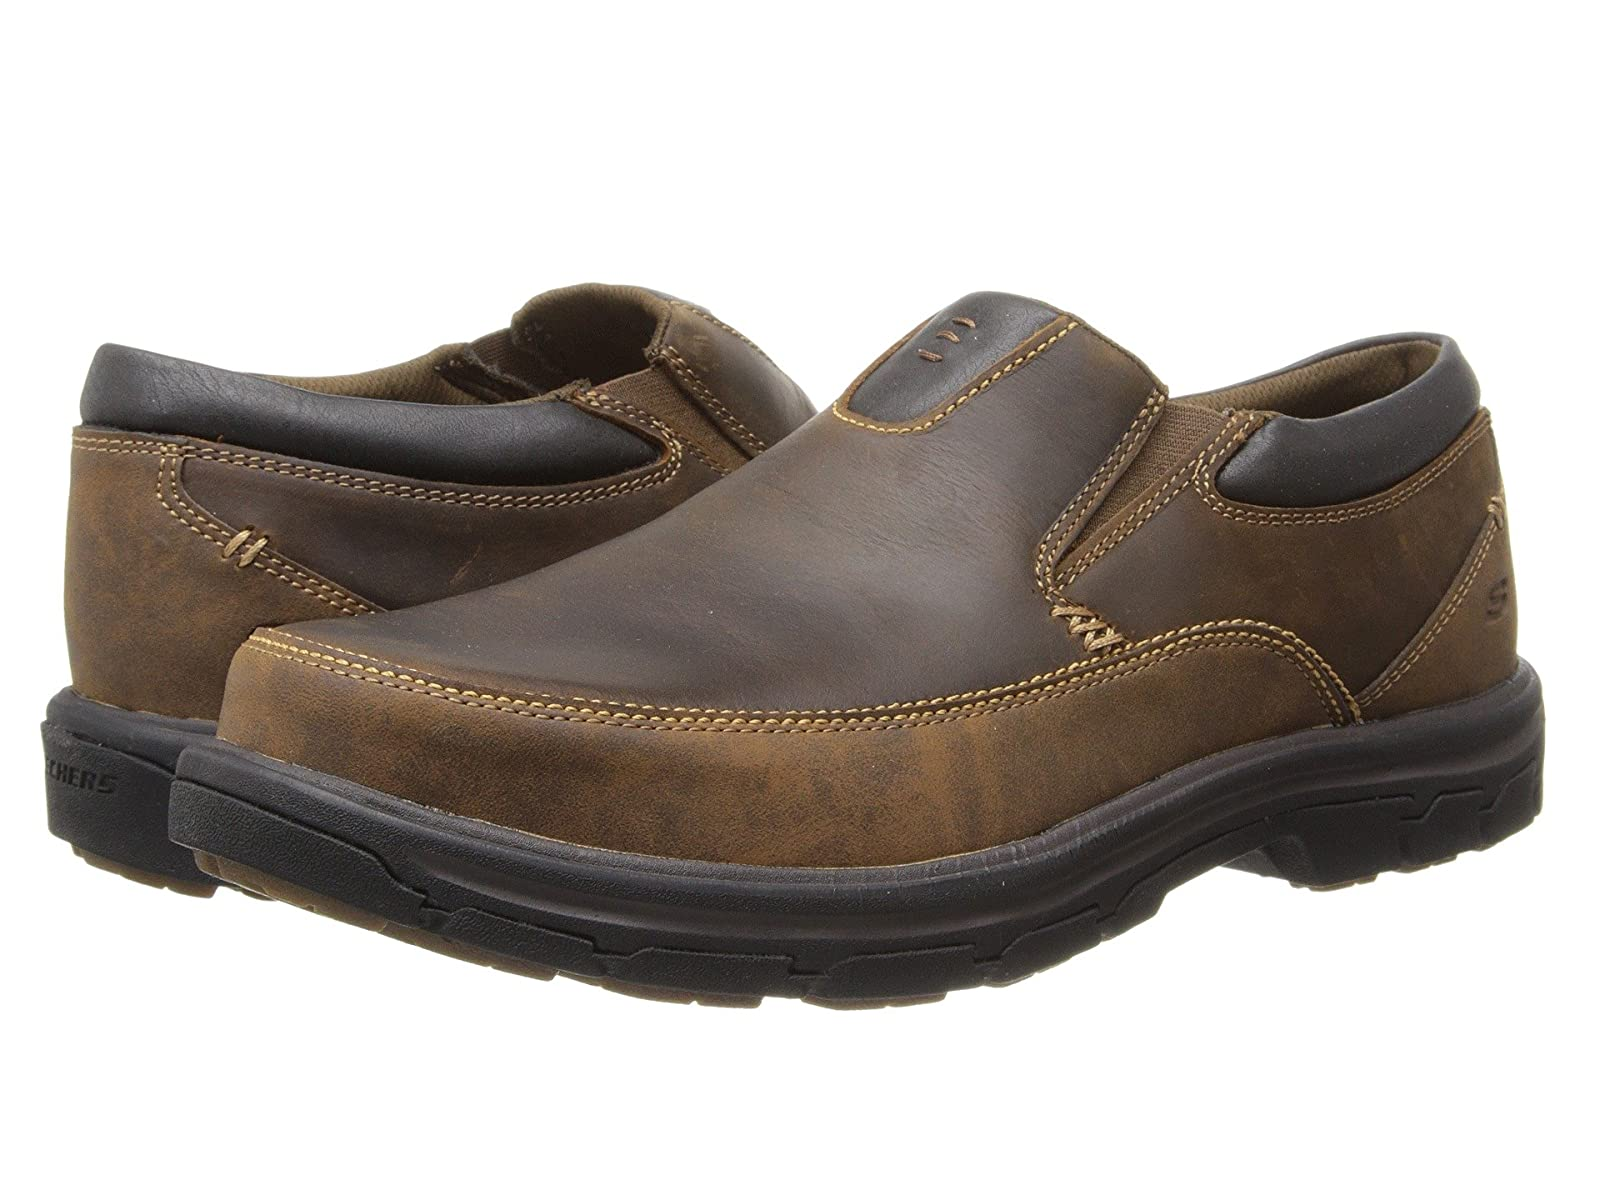 SKECHERS Segment The SearchCheap and distinctive eye-catching shoes